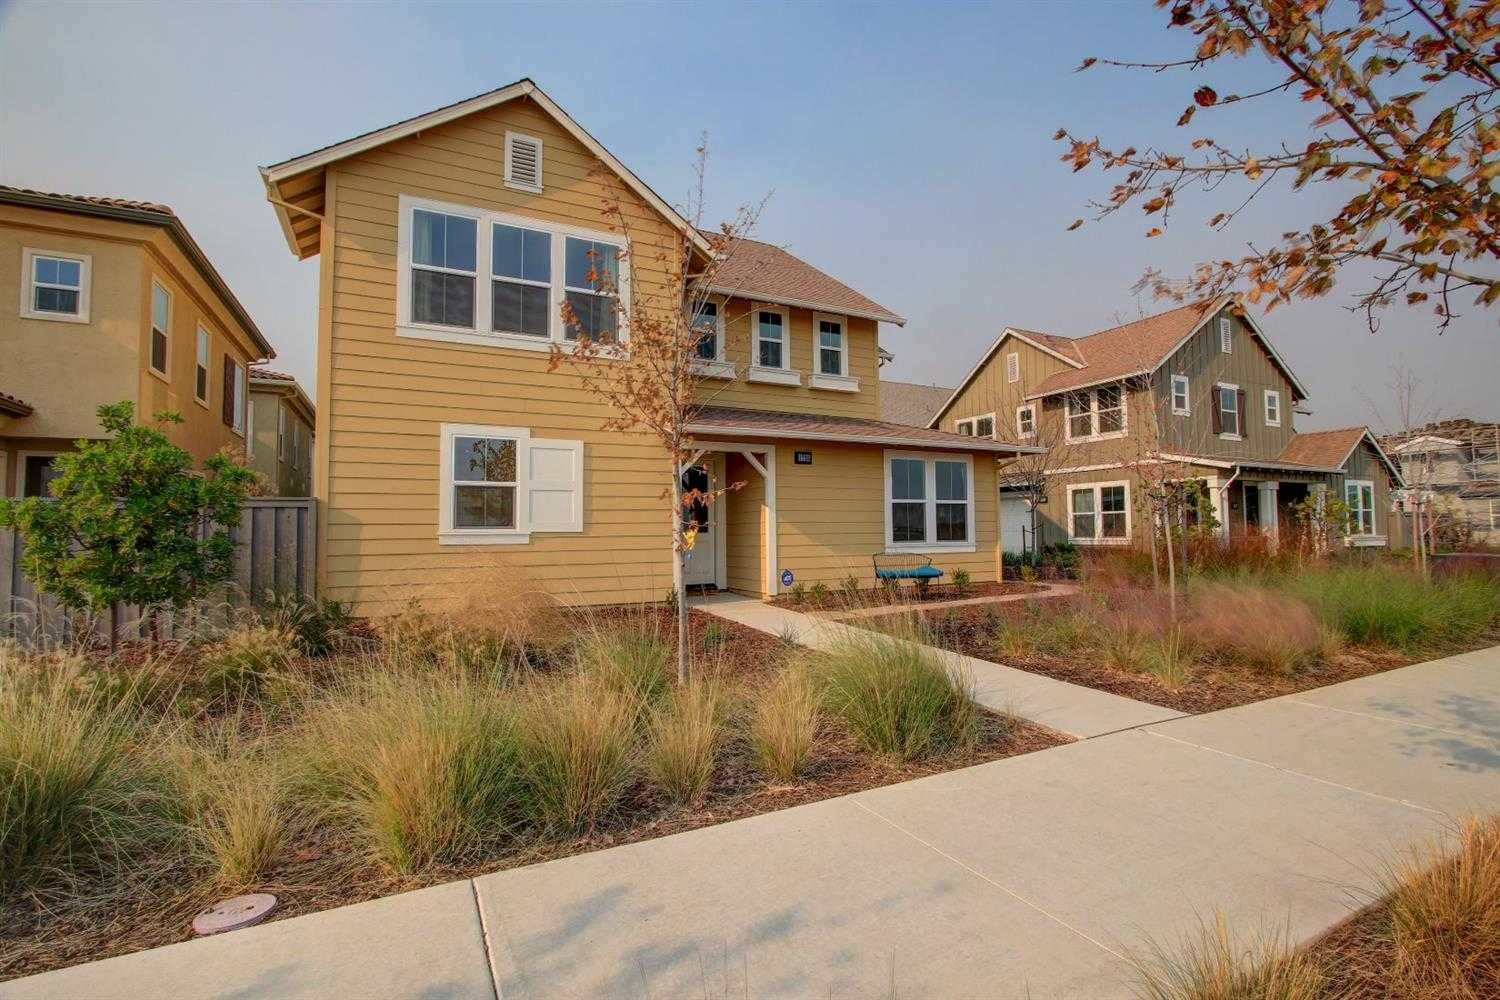 $795,000 - 4Br/3Ba -  for Sale in Cannery, Davis